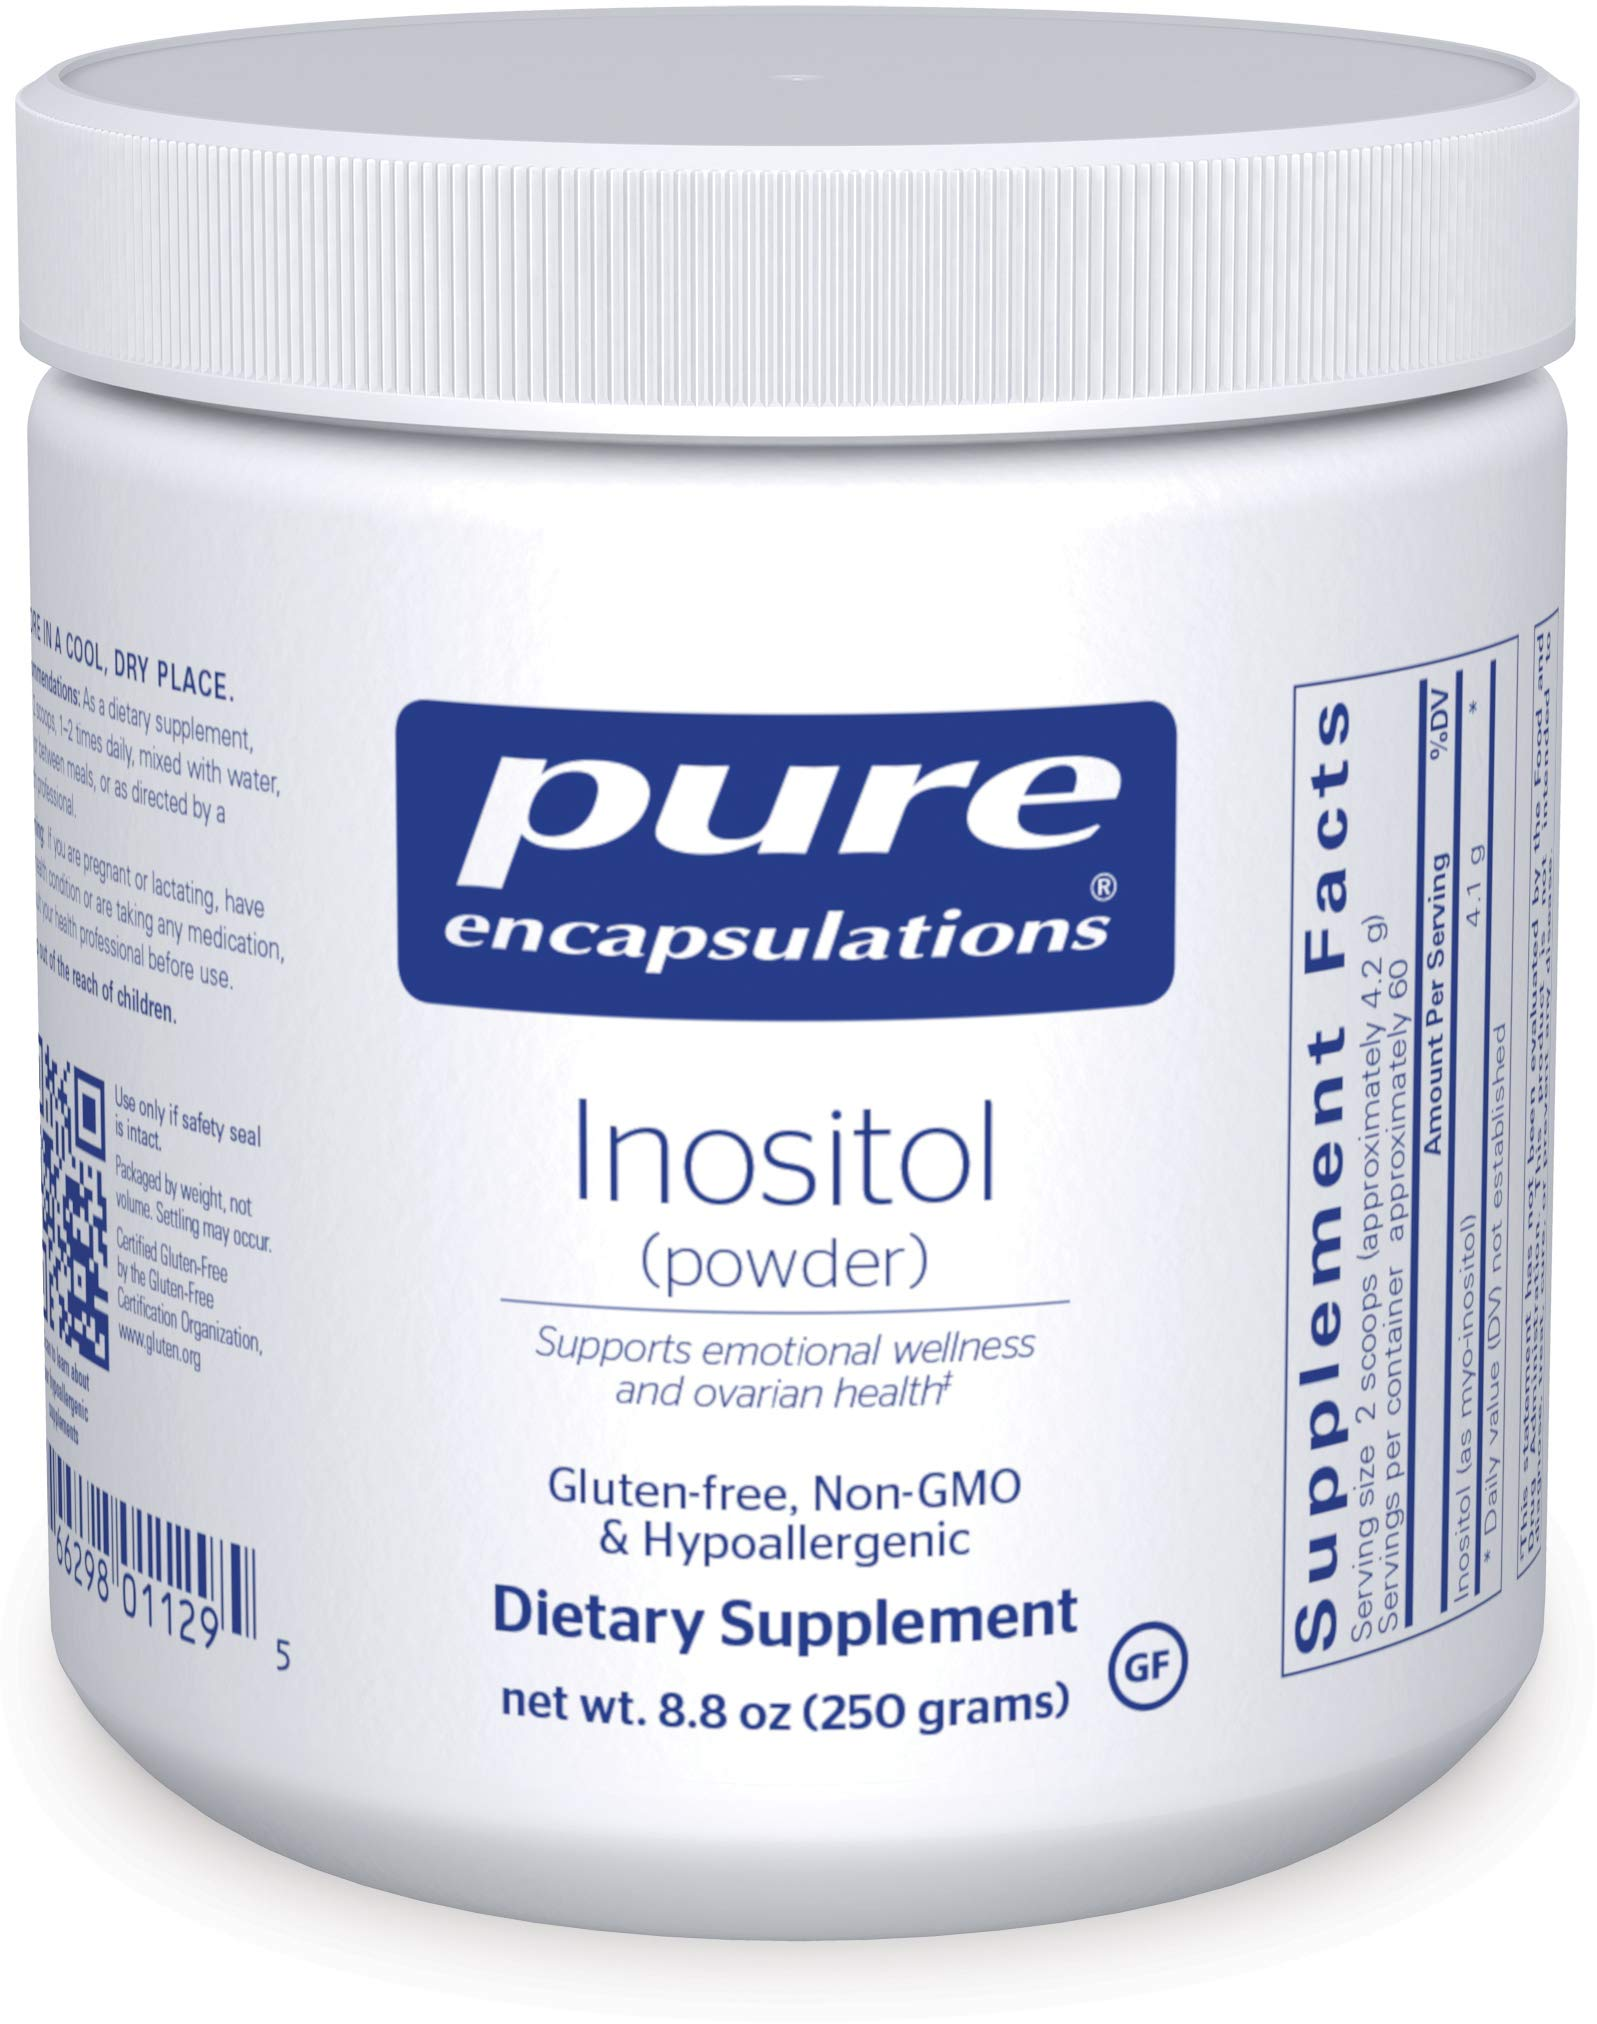 Pure Encapsulations Inositol (Powder) | Supplement to Support, Mood, Energy, Nervous System, and Ovarian Function* | 8.8 Ounces